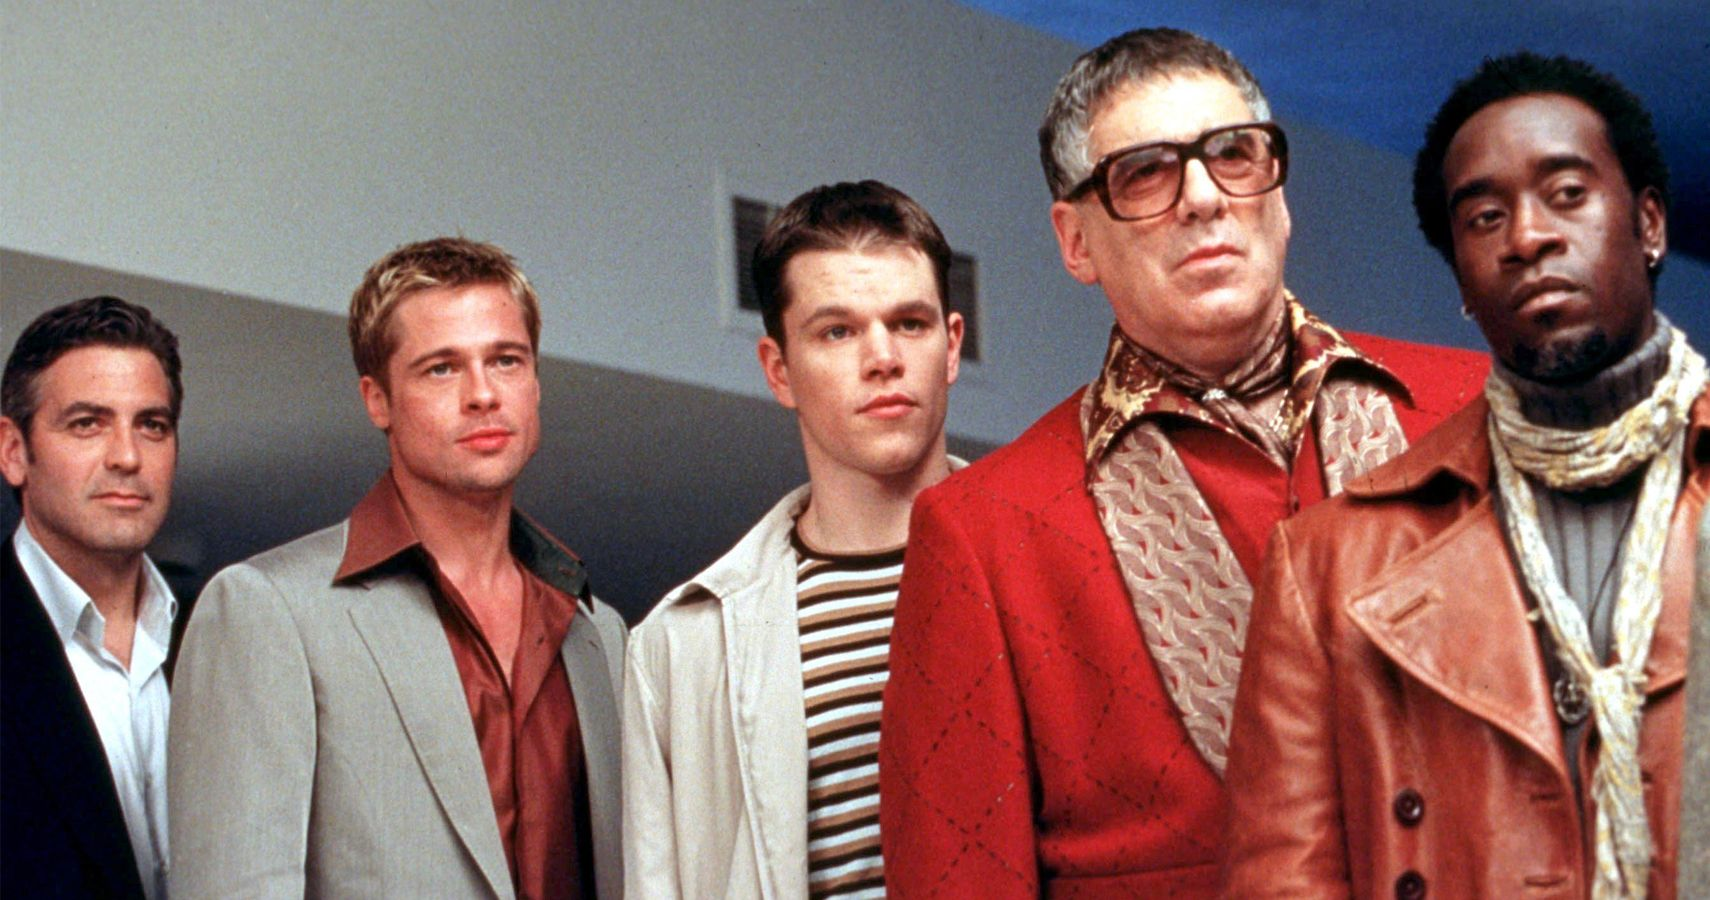 Cast Of Oceans 11: Wha...